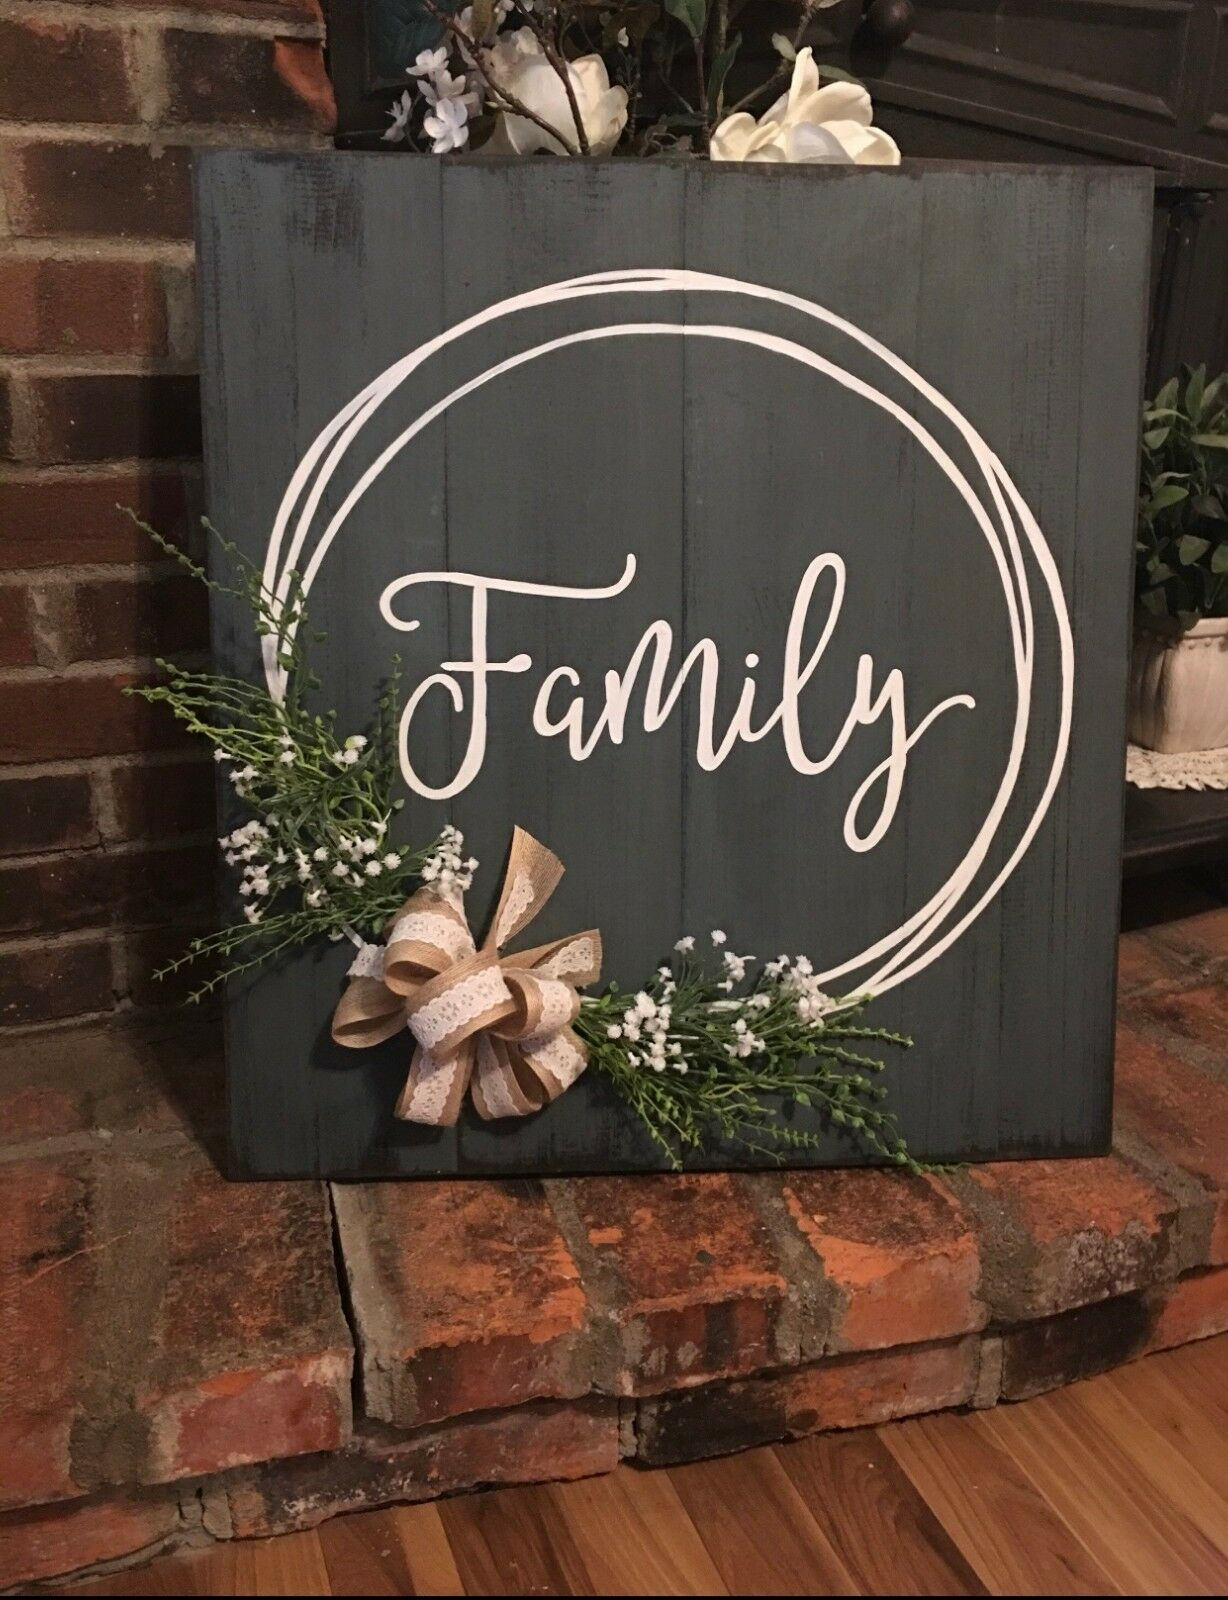 Family hand painted sign with hand drawn wreath,burlap, and lace bow